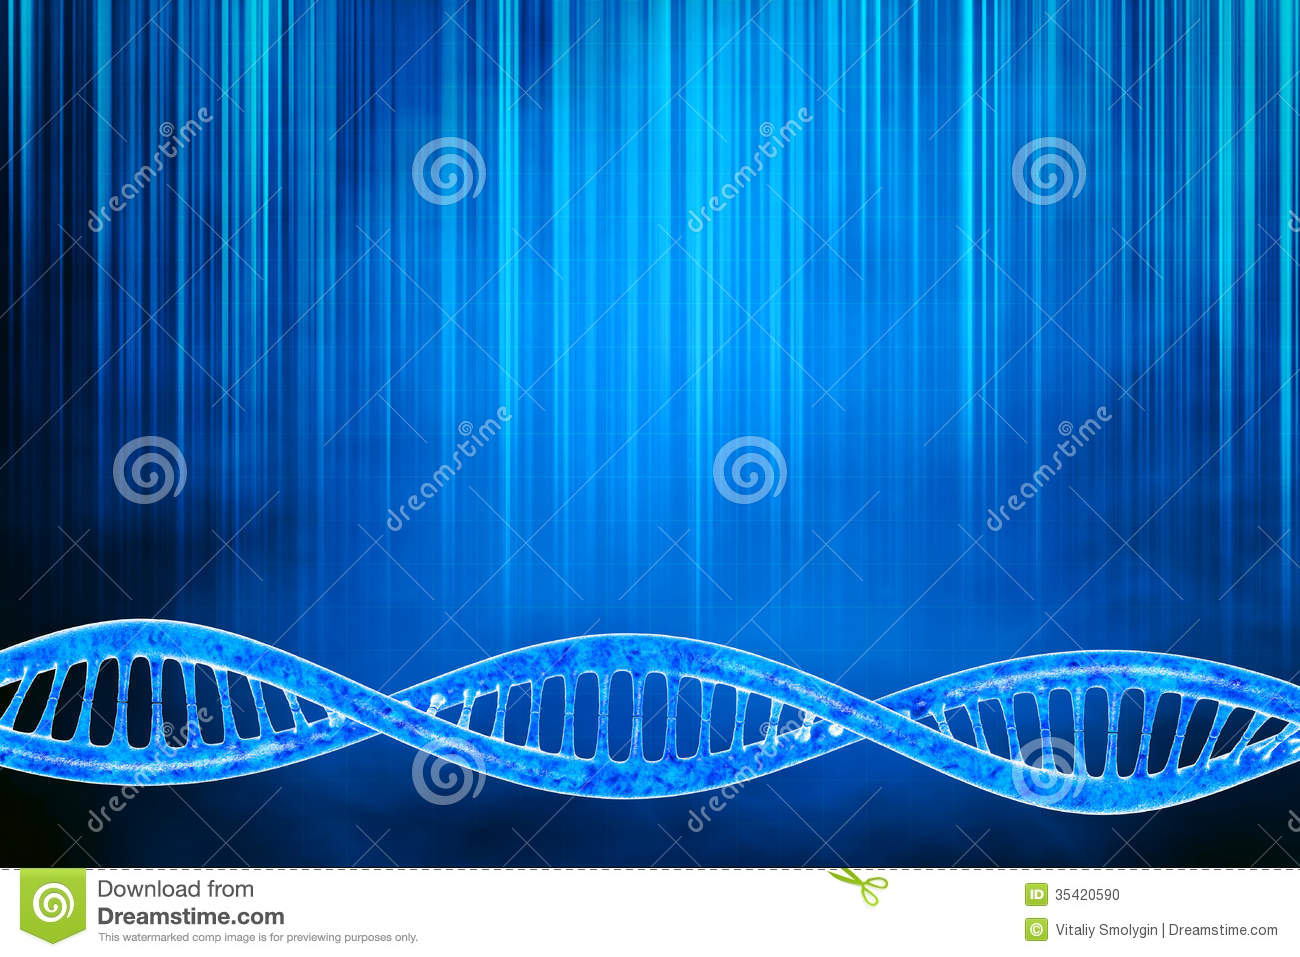 Digital 3d illustration of a dna in beautiful background